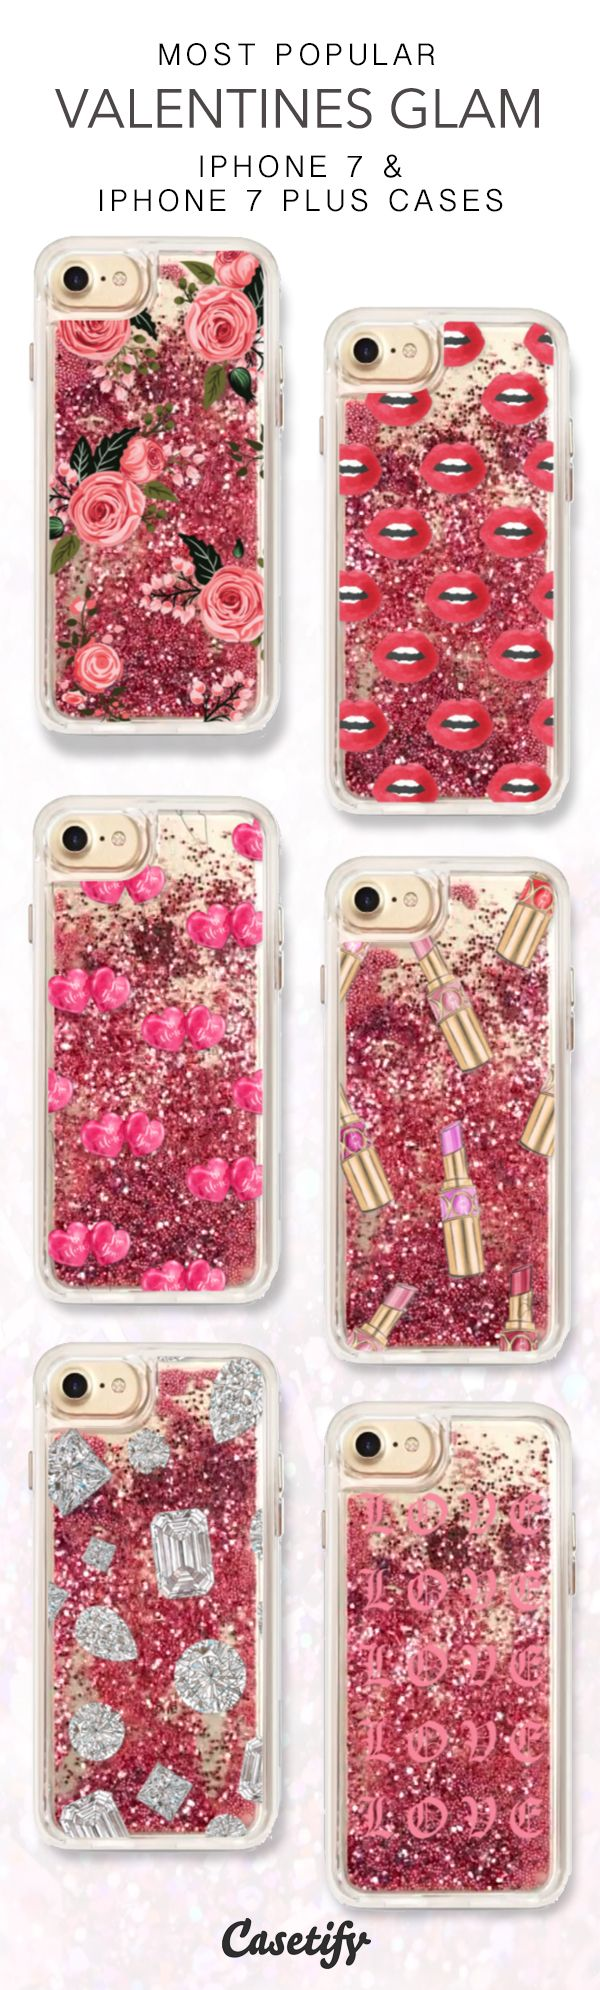 Most Popular Valentines Glam iPhone 7 Cases & iPhone 7 Plus Case here > https://www.casetify.com/collections/iphone-7-glitter-cases#/